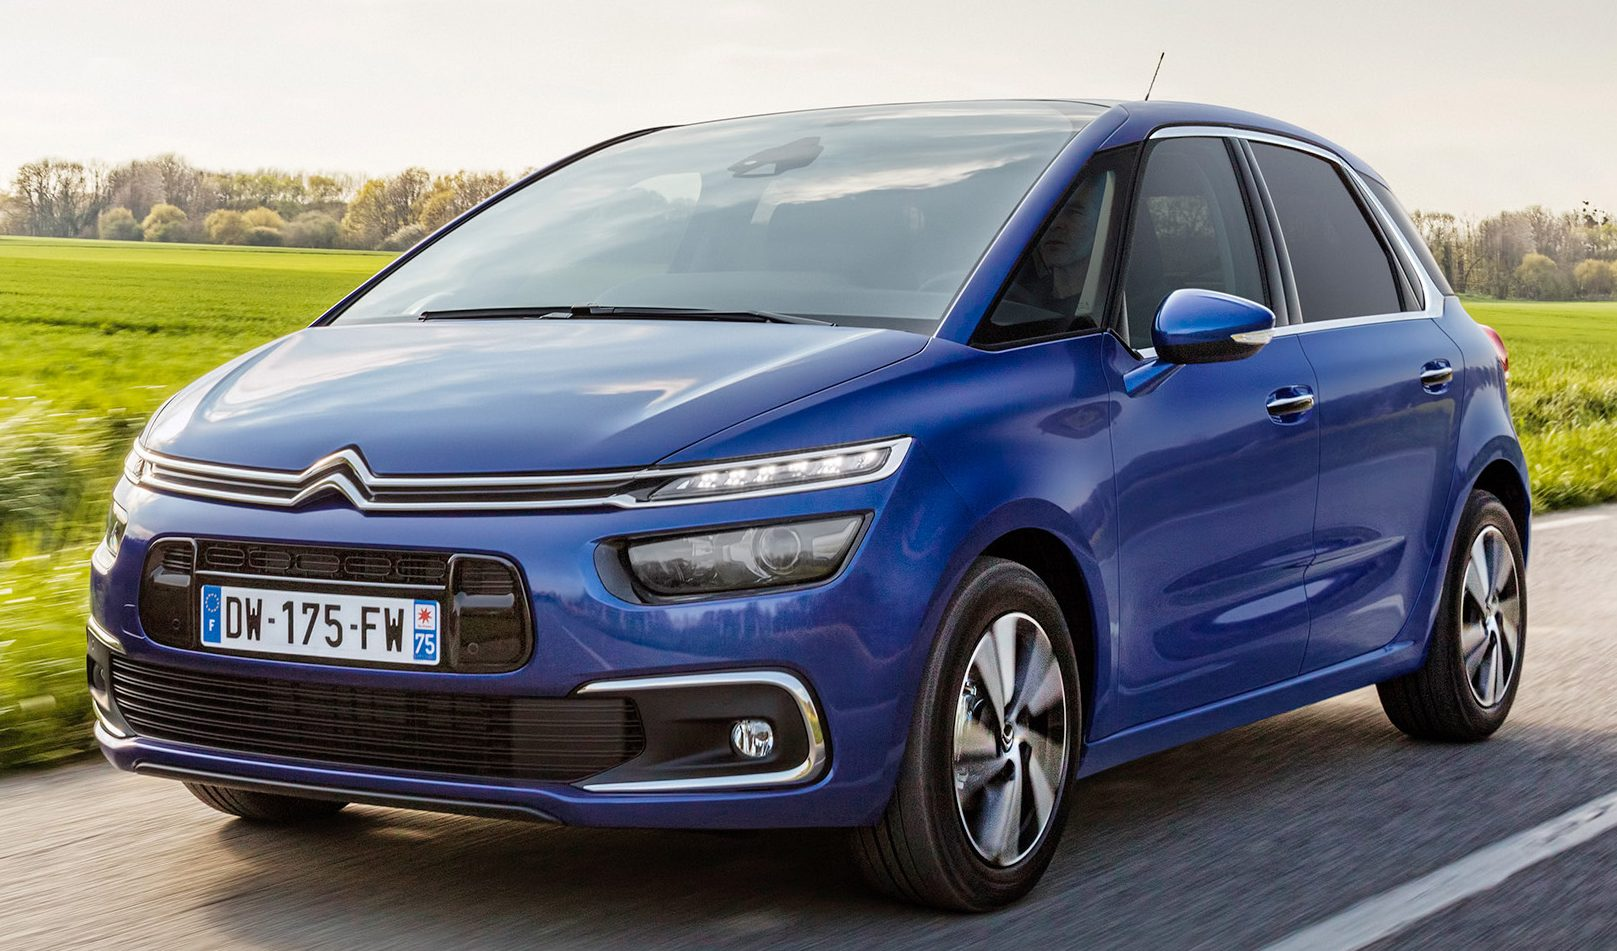 2016 citroen c4 picasso grand c4 picasso facelift image. Black Bedroom Furniture Sets. Home Design Ideas